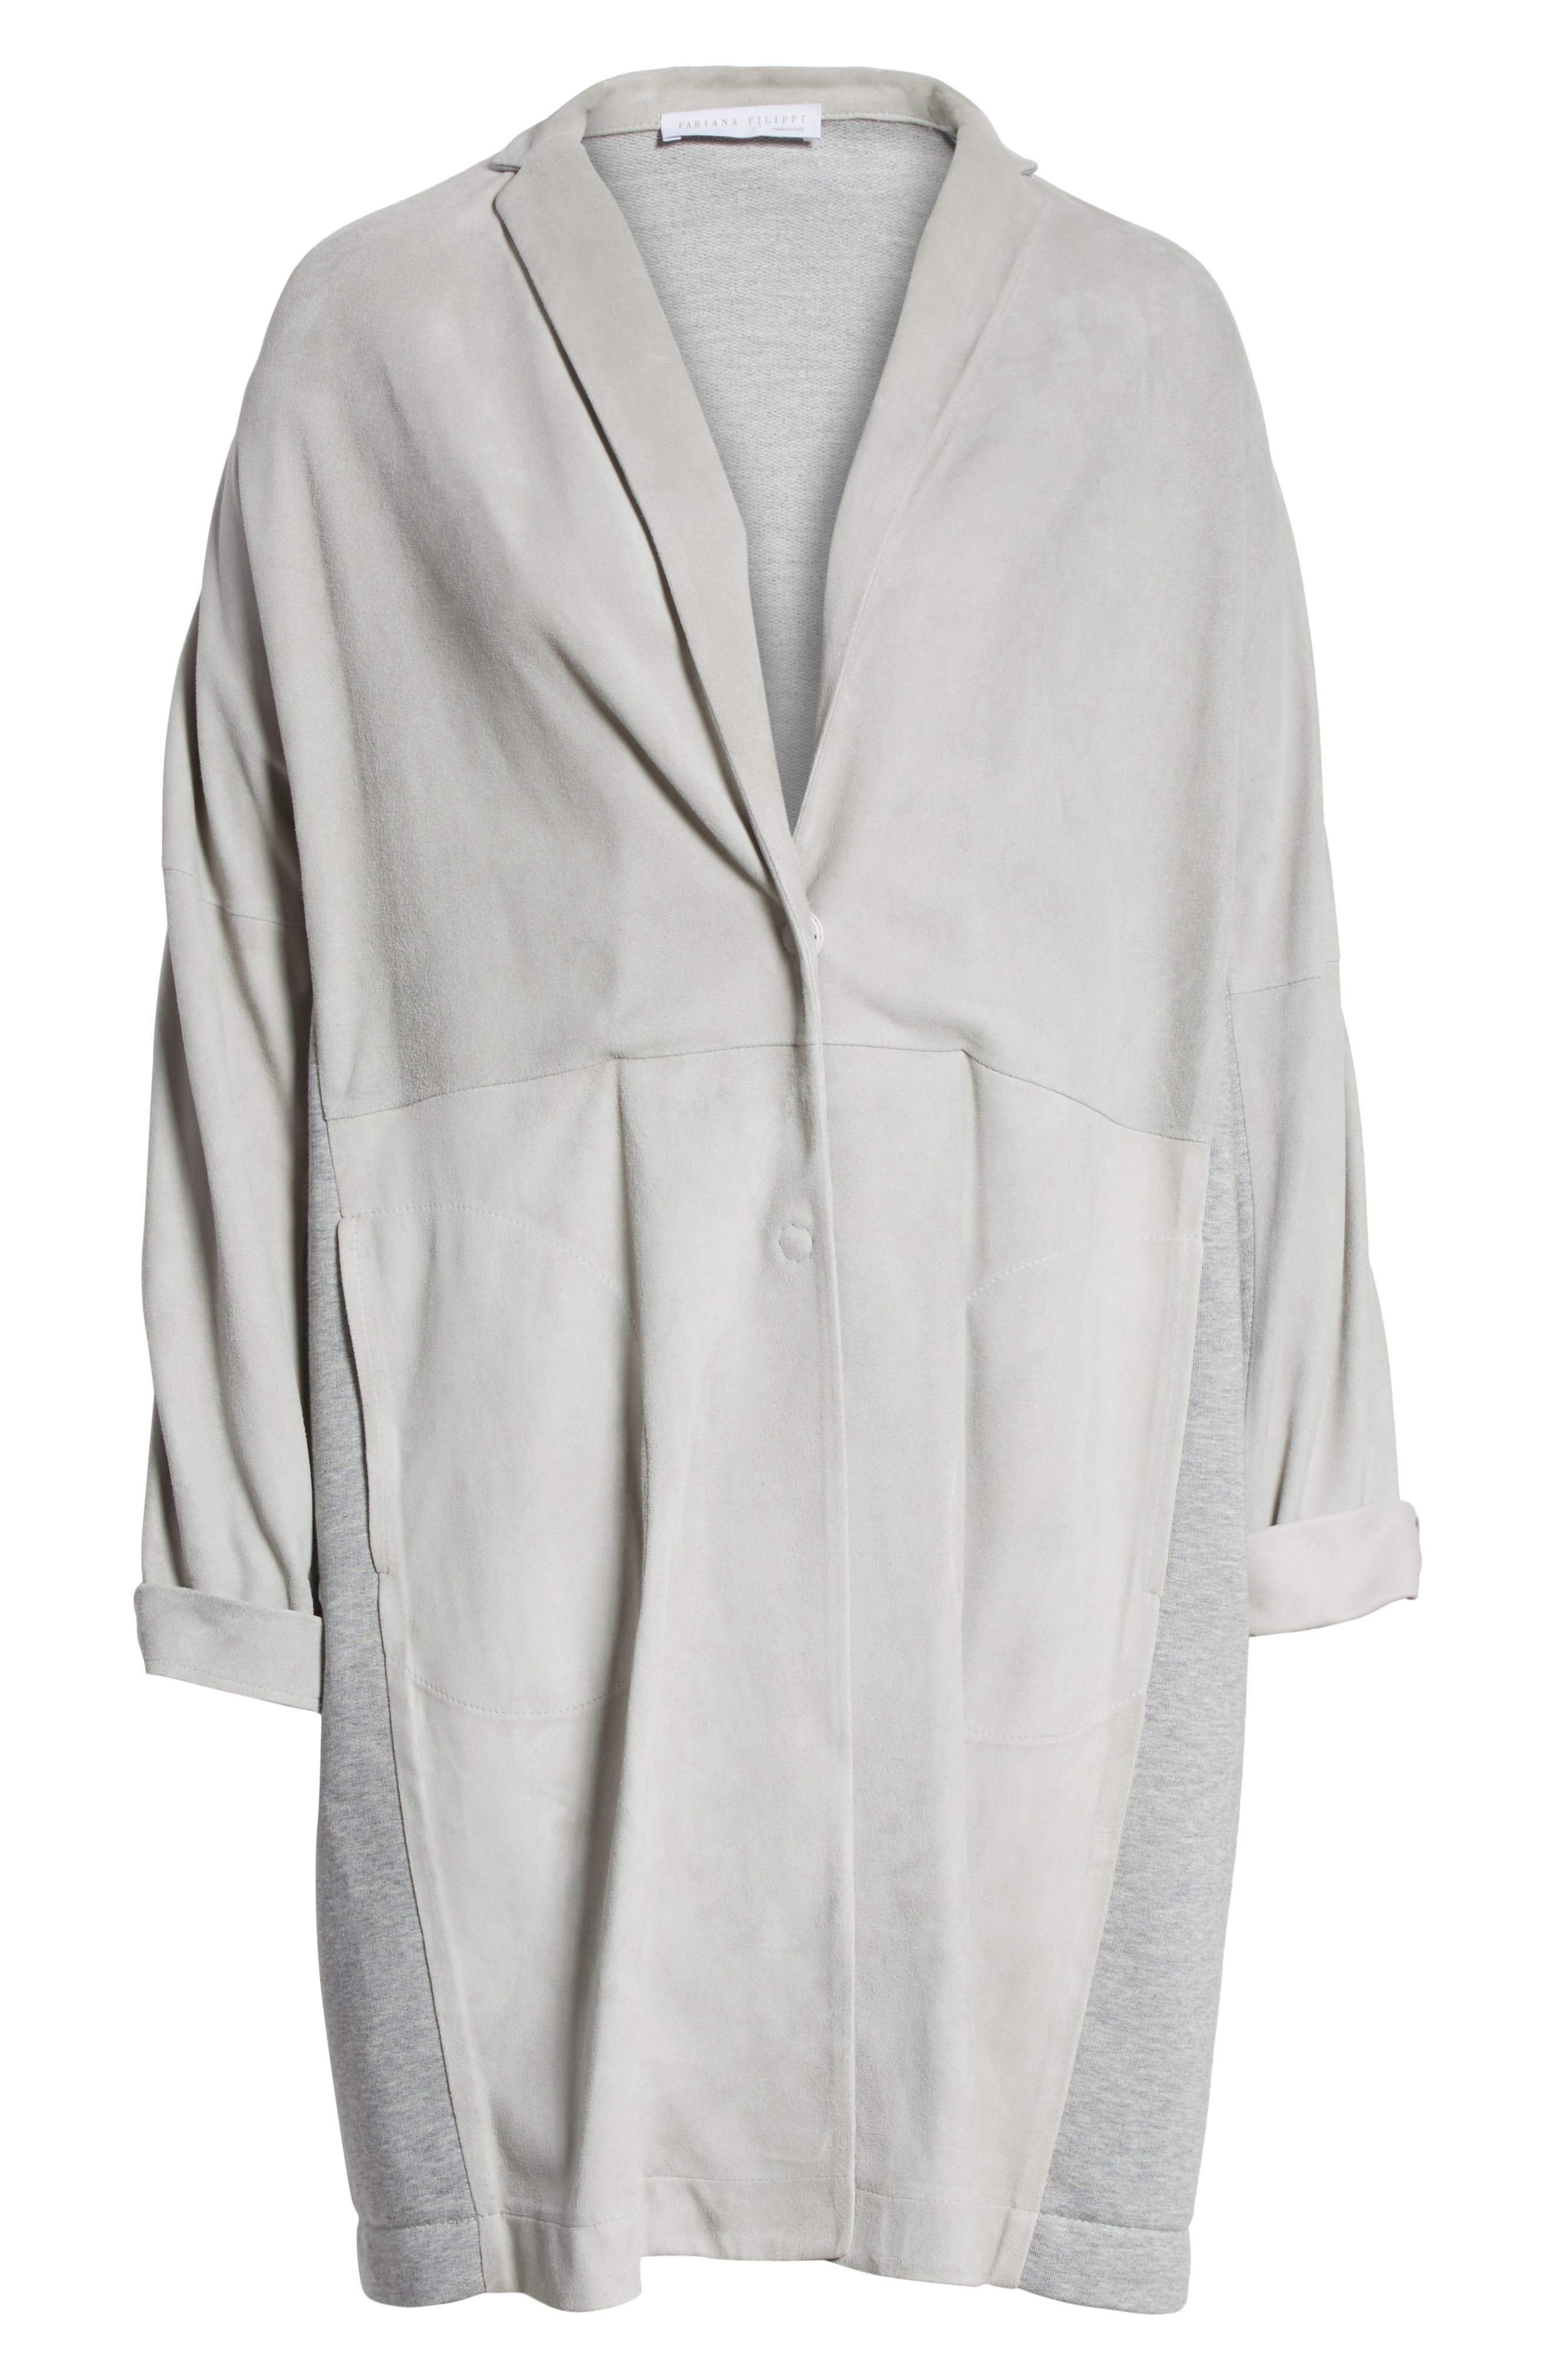 Suede Front Jersey Jacket,                             Alternate thumbnail 7, color,                             Grey